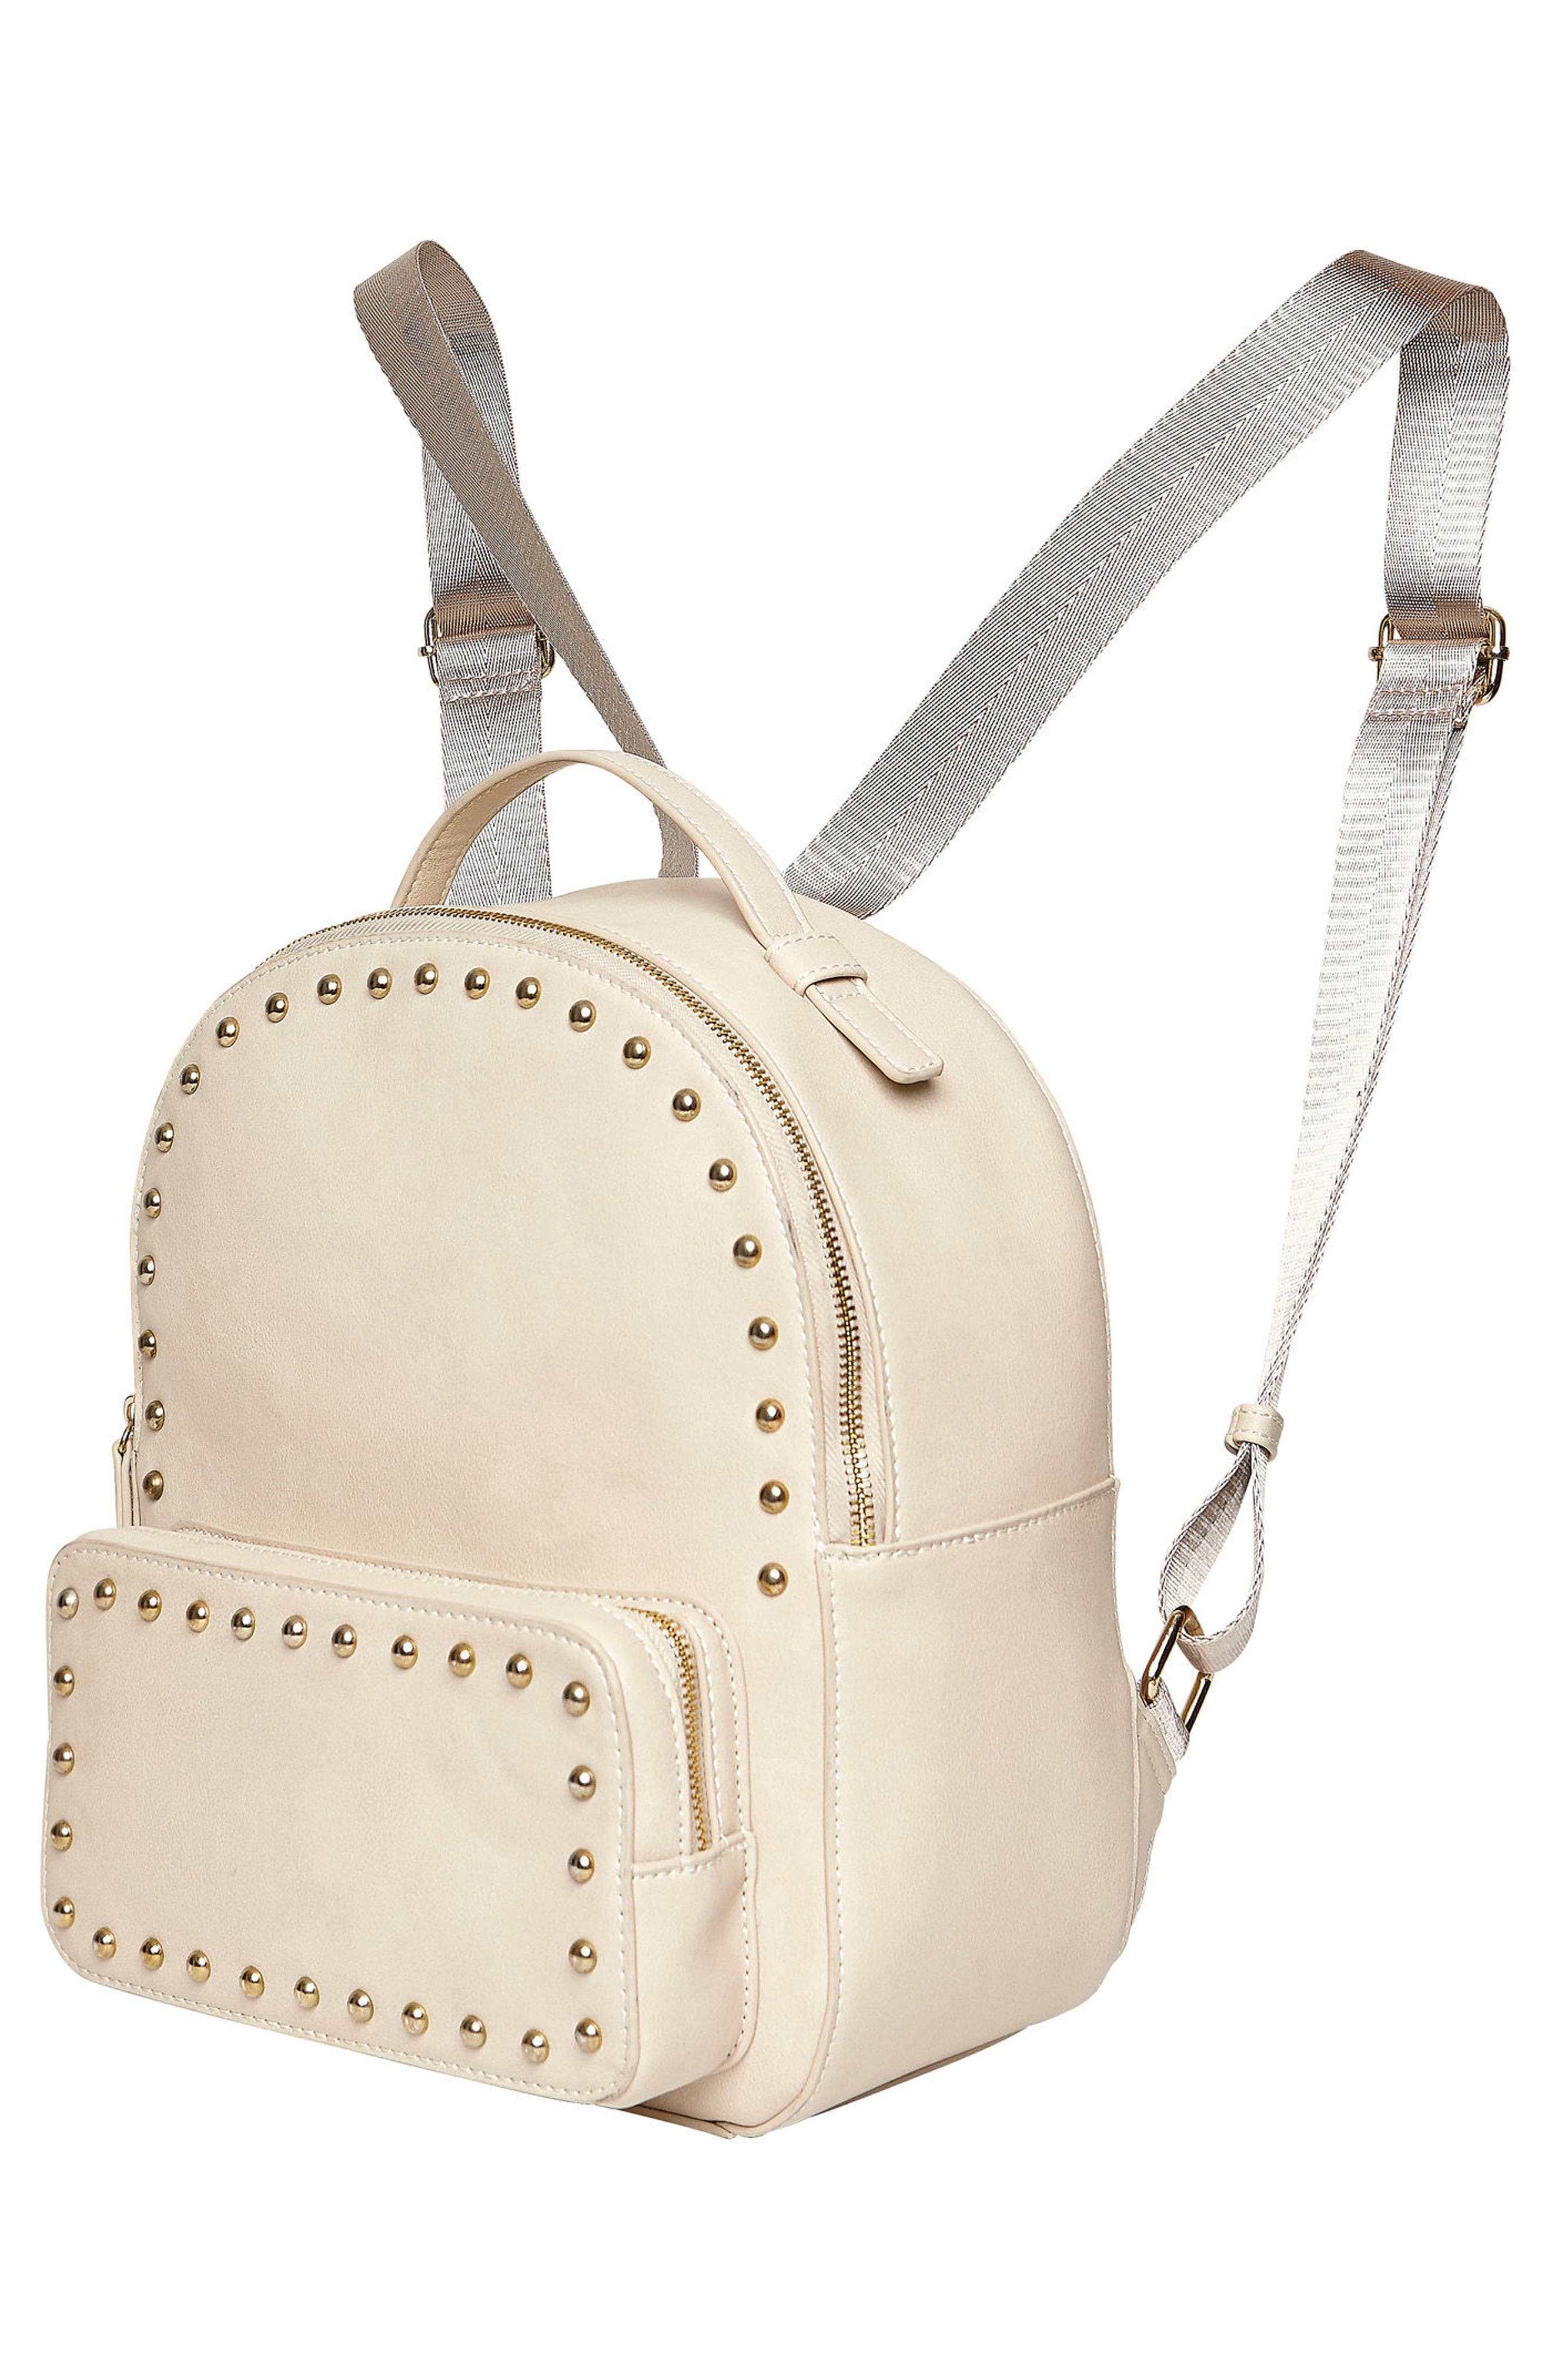 URBAN ORIGINALS,                             Star Seeker Vegan Leather Backpack,                             Alternate thumbnail 4, color,                             STONE